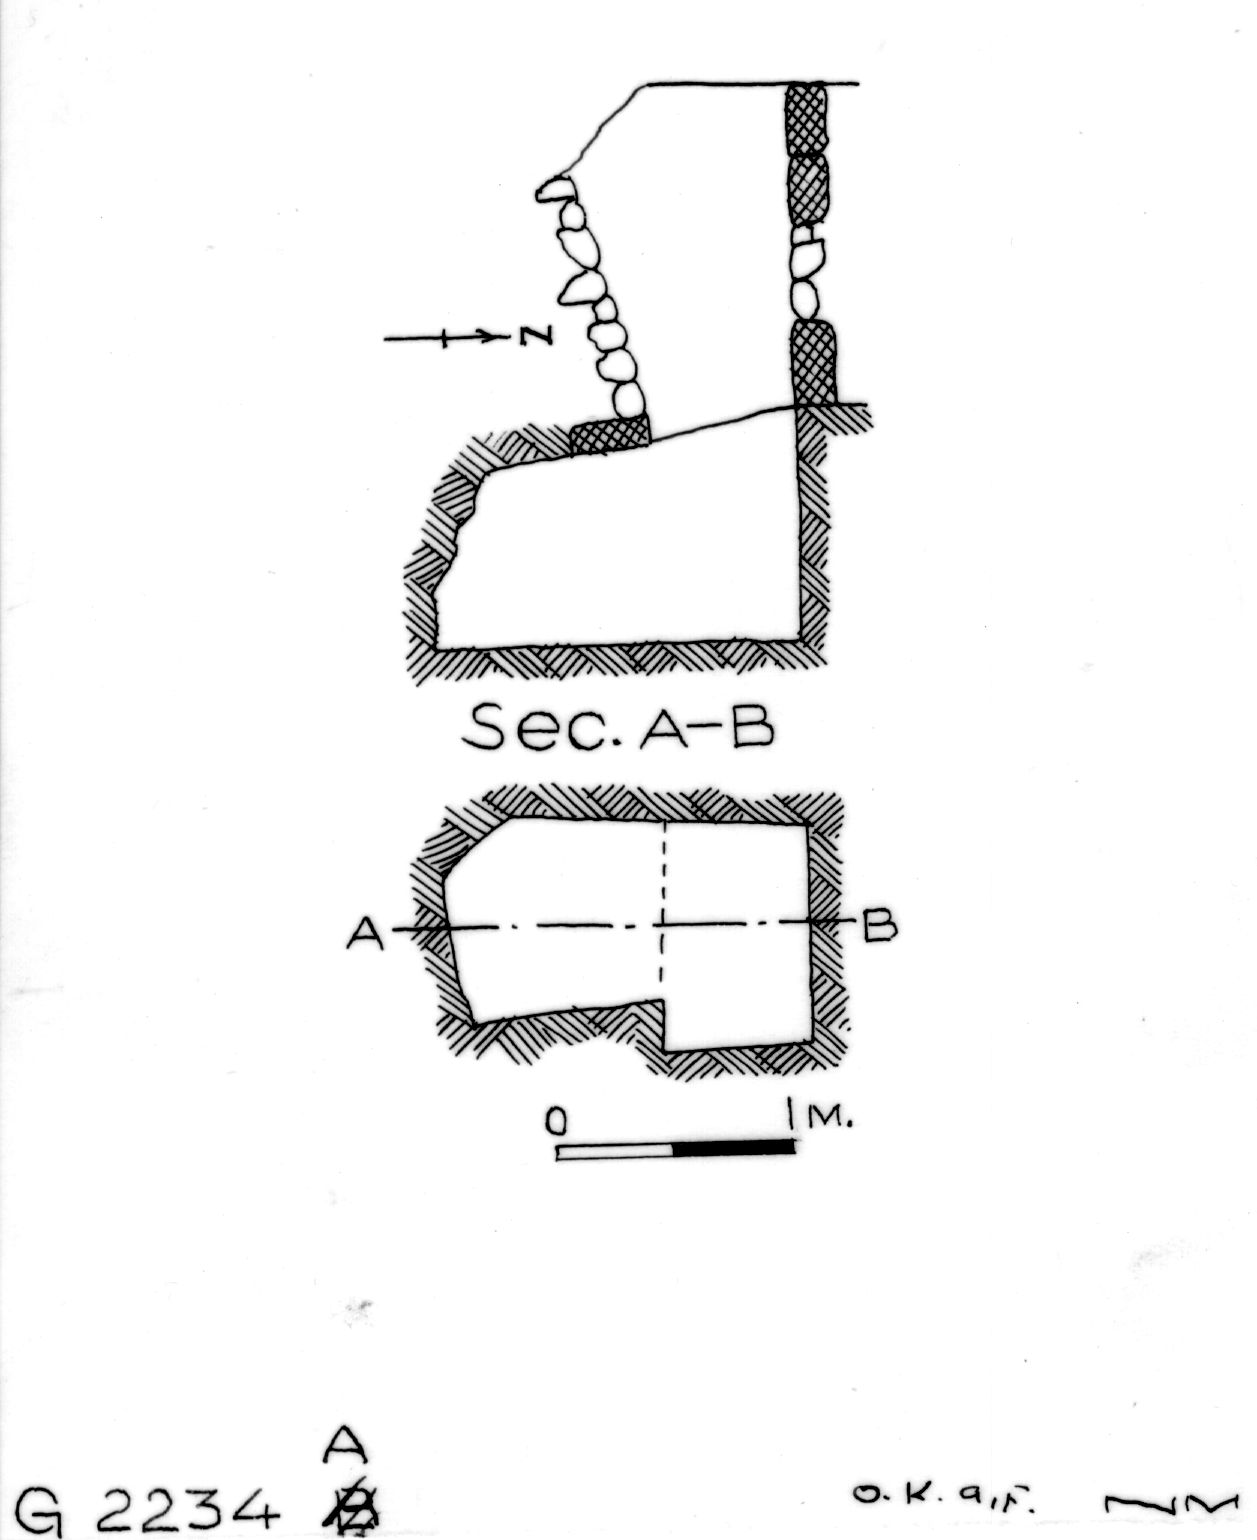 Maps and plans: G 2234, Shaft A